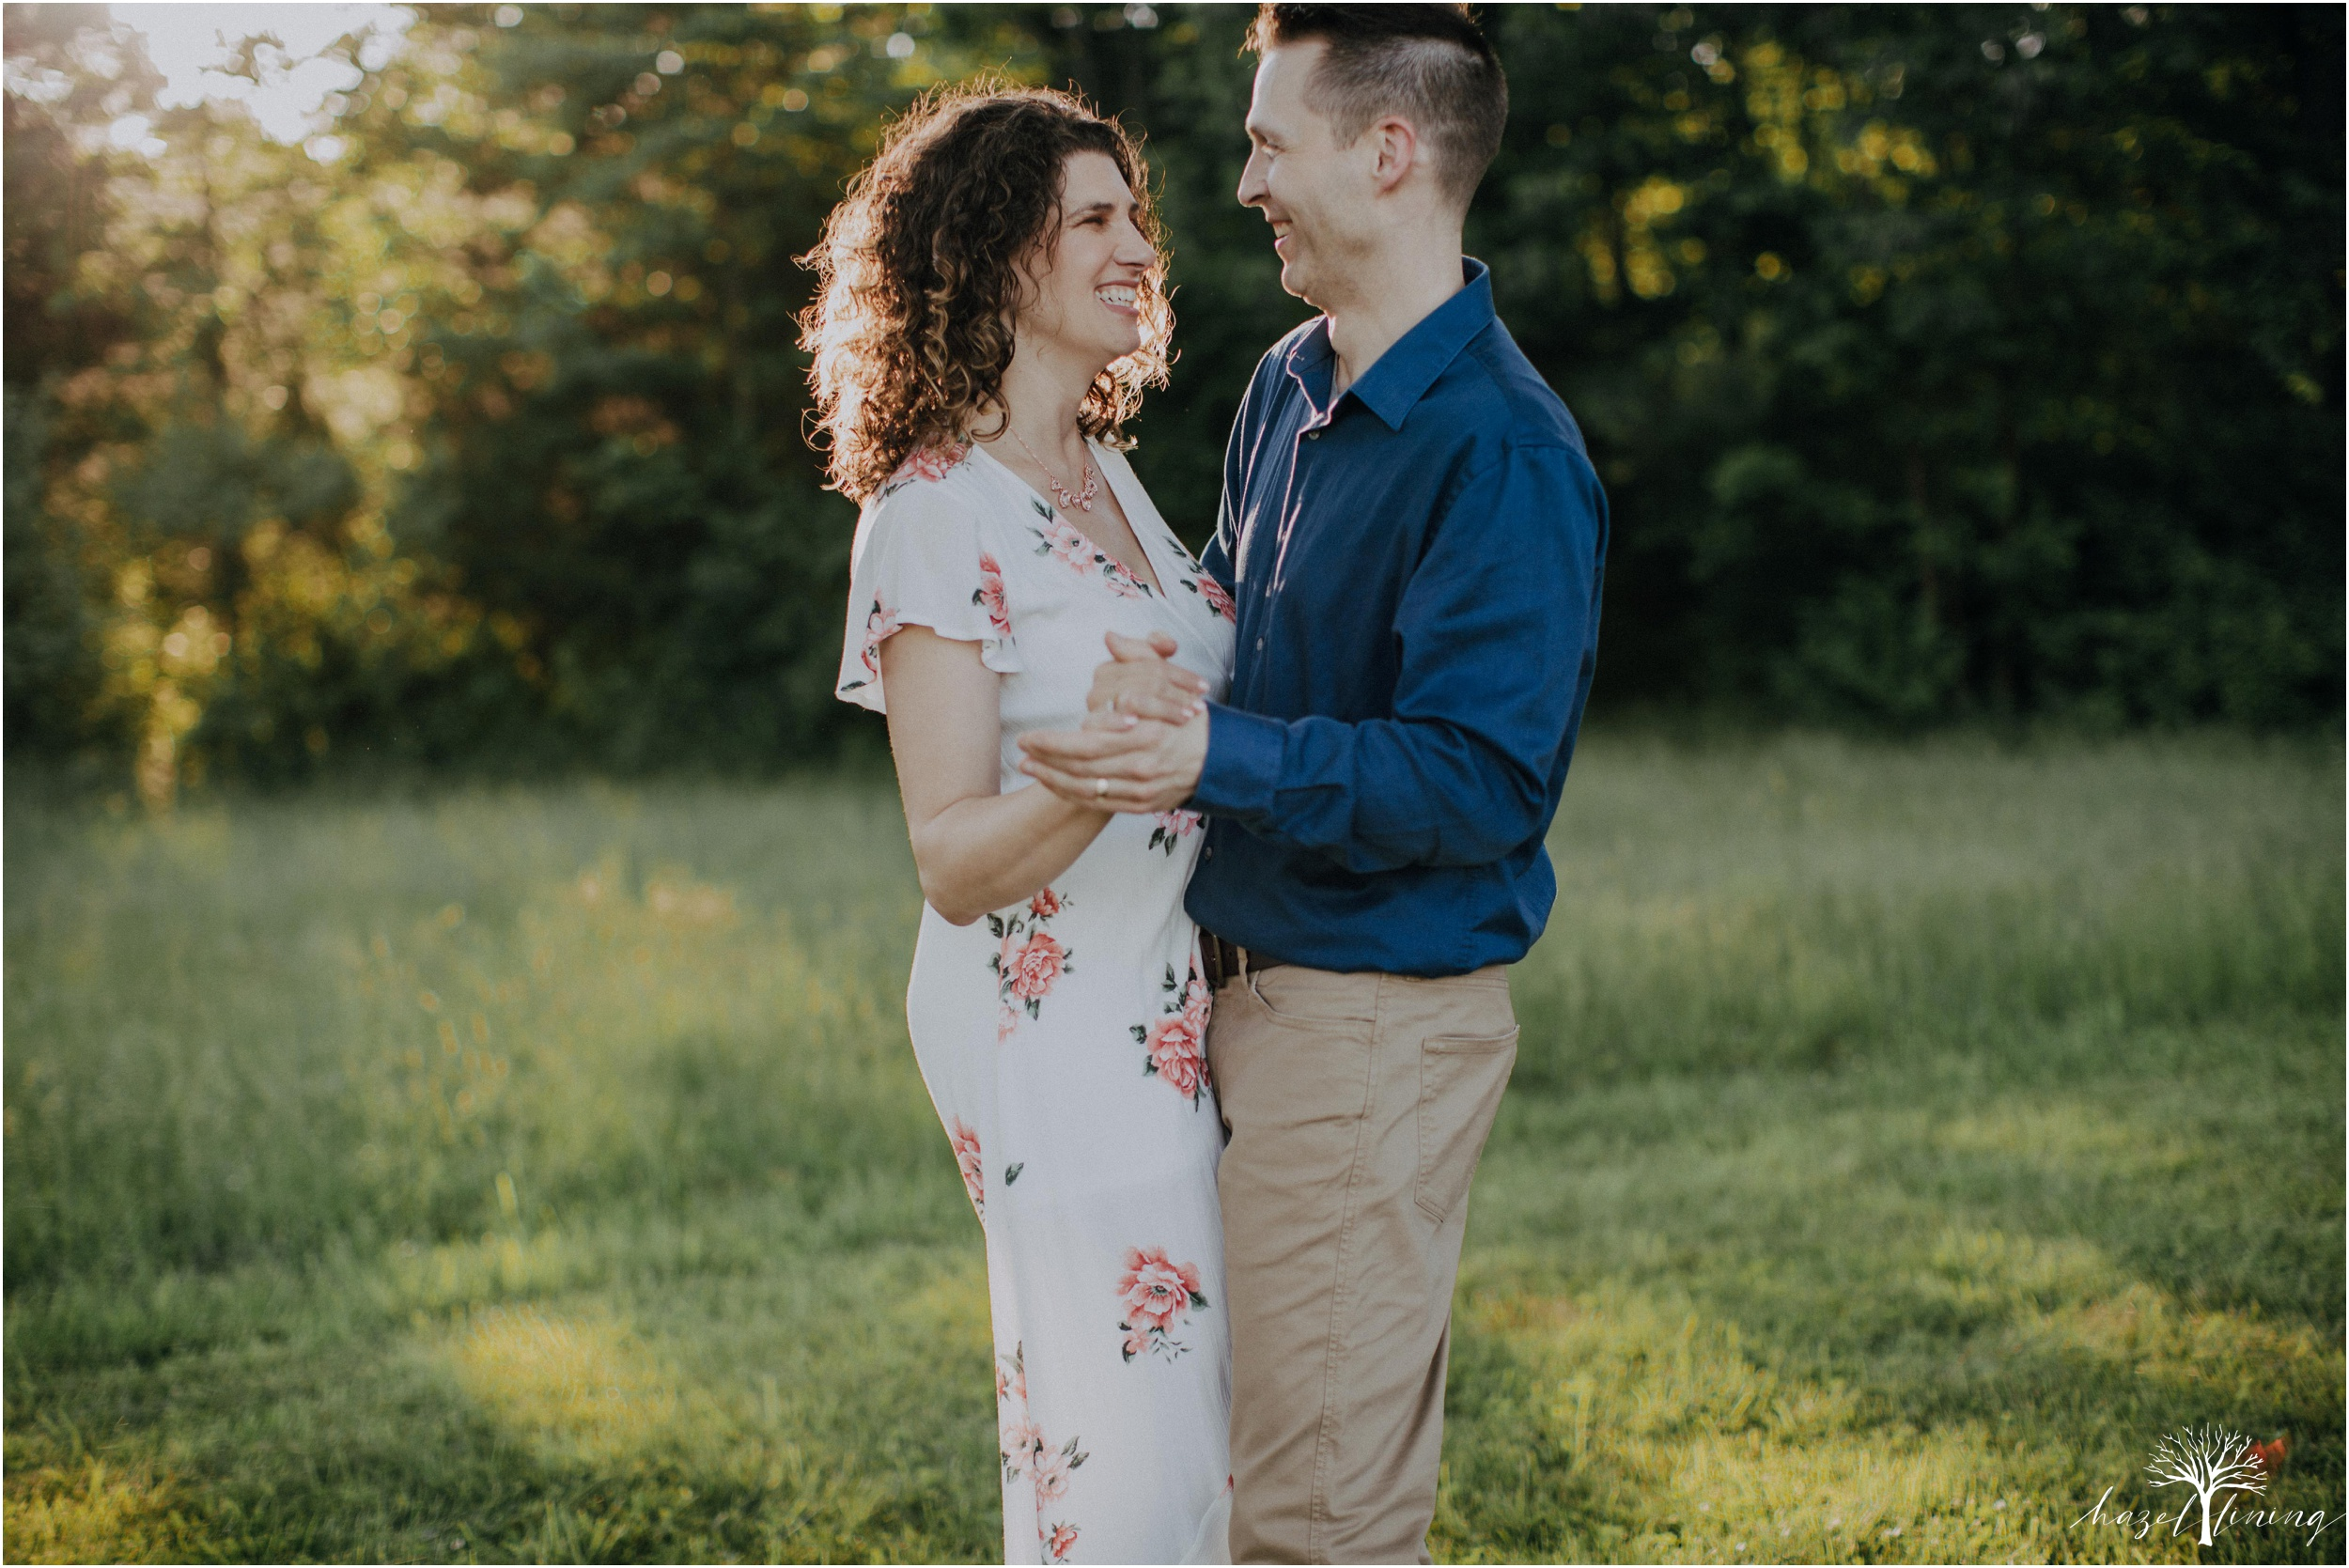 pete-rachelle-sawadski-20-year-anniversary-portrait-session-hazel-lining-photography-destination-elopement-wedding-engagement-photography_0283.jpg